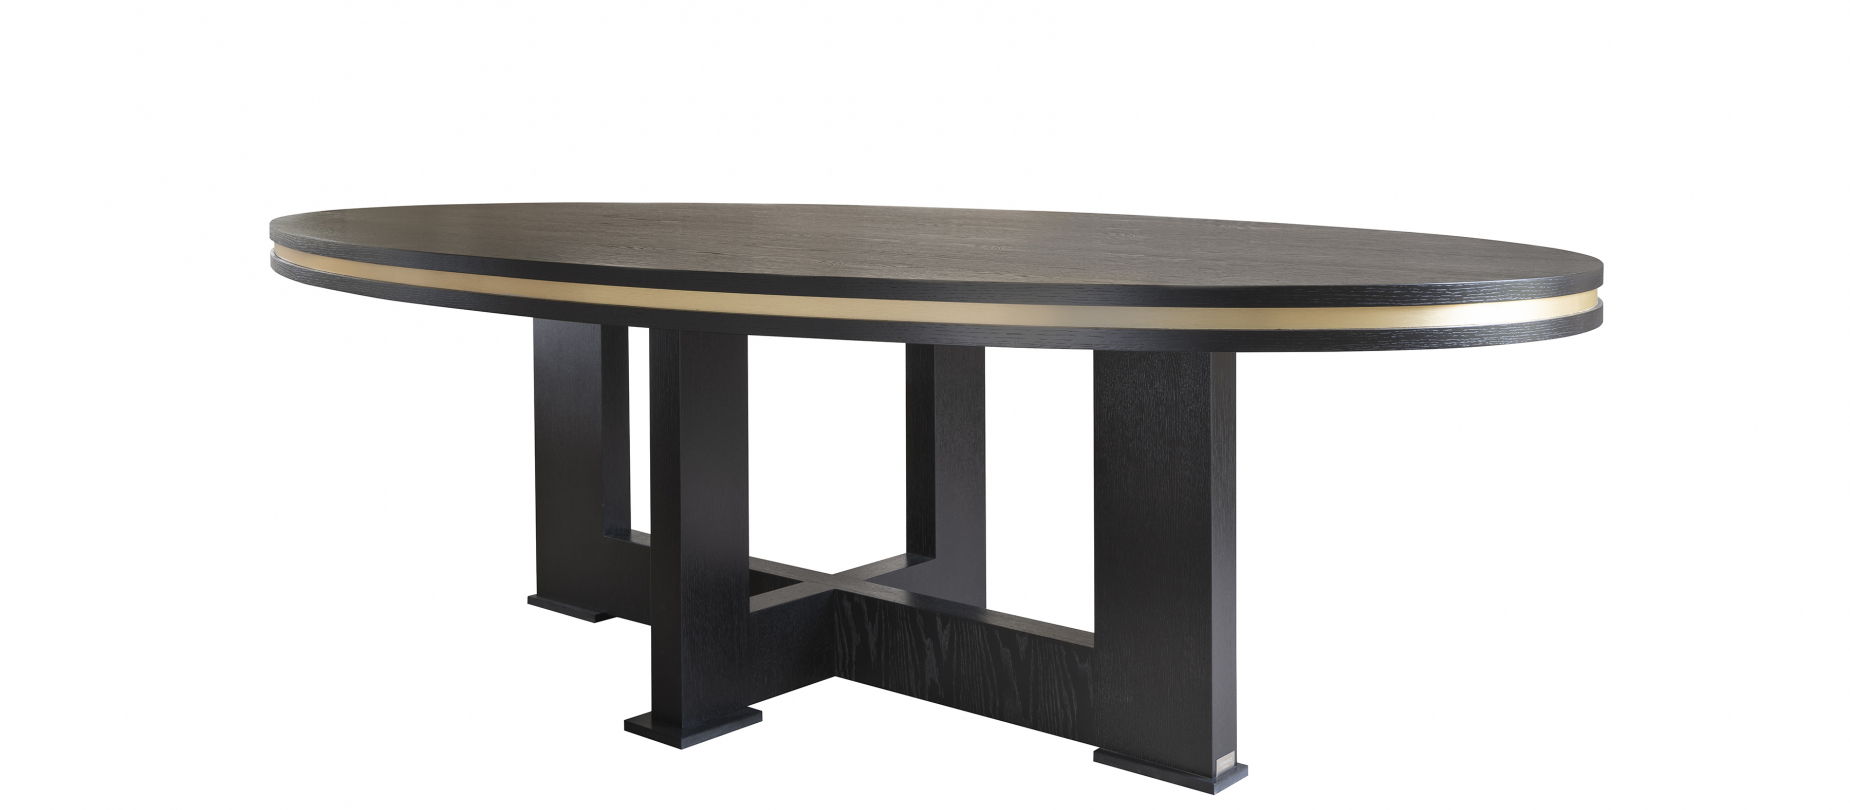 Topaz Ovale dining table